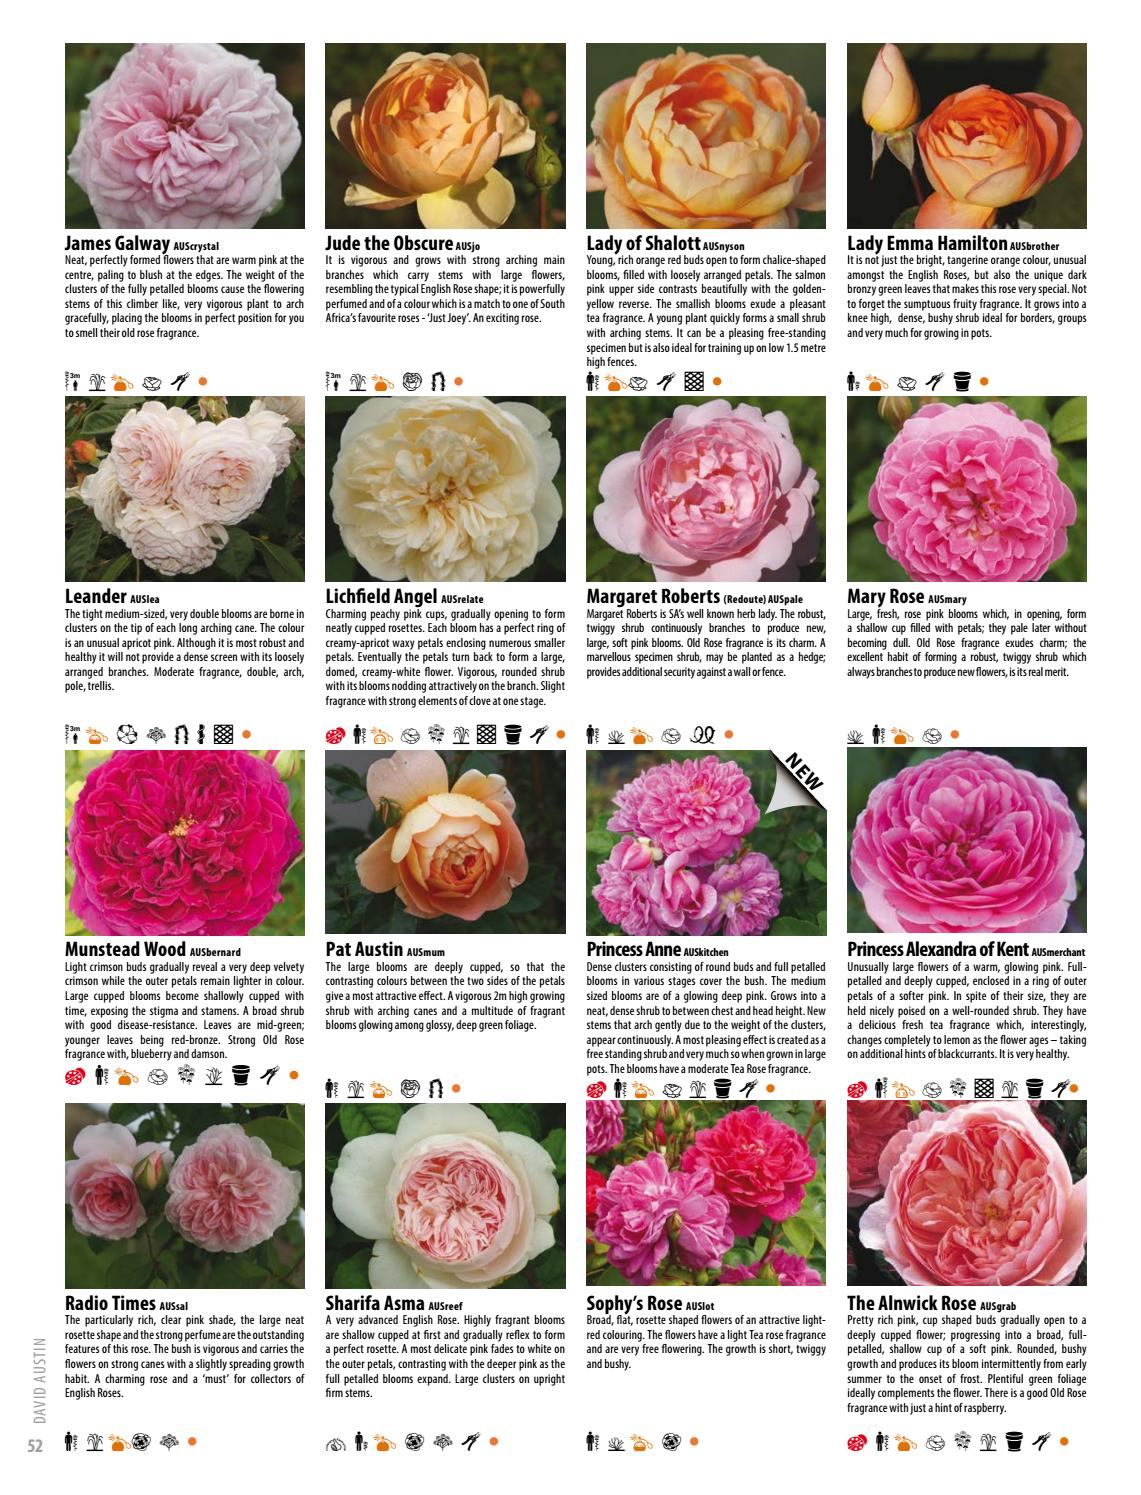 2017 18 Ludwigs Roses Catalogue By Anja Taschner Issuu